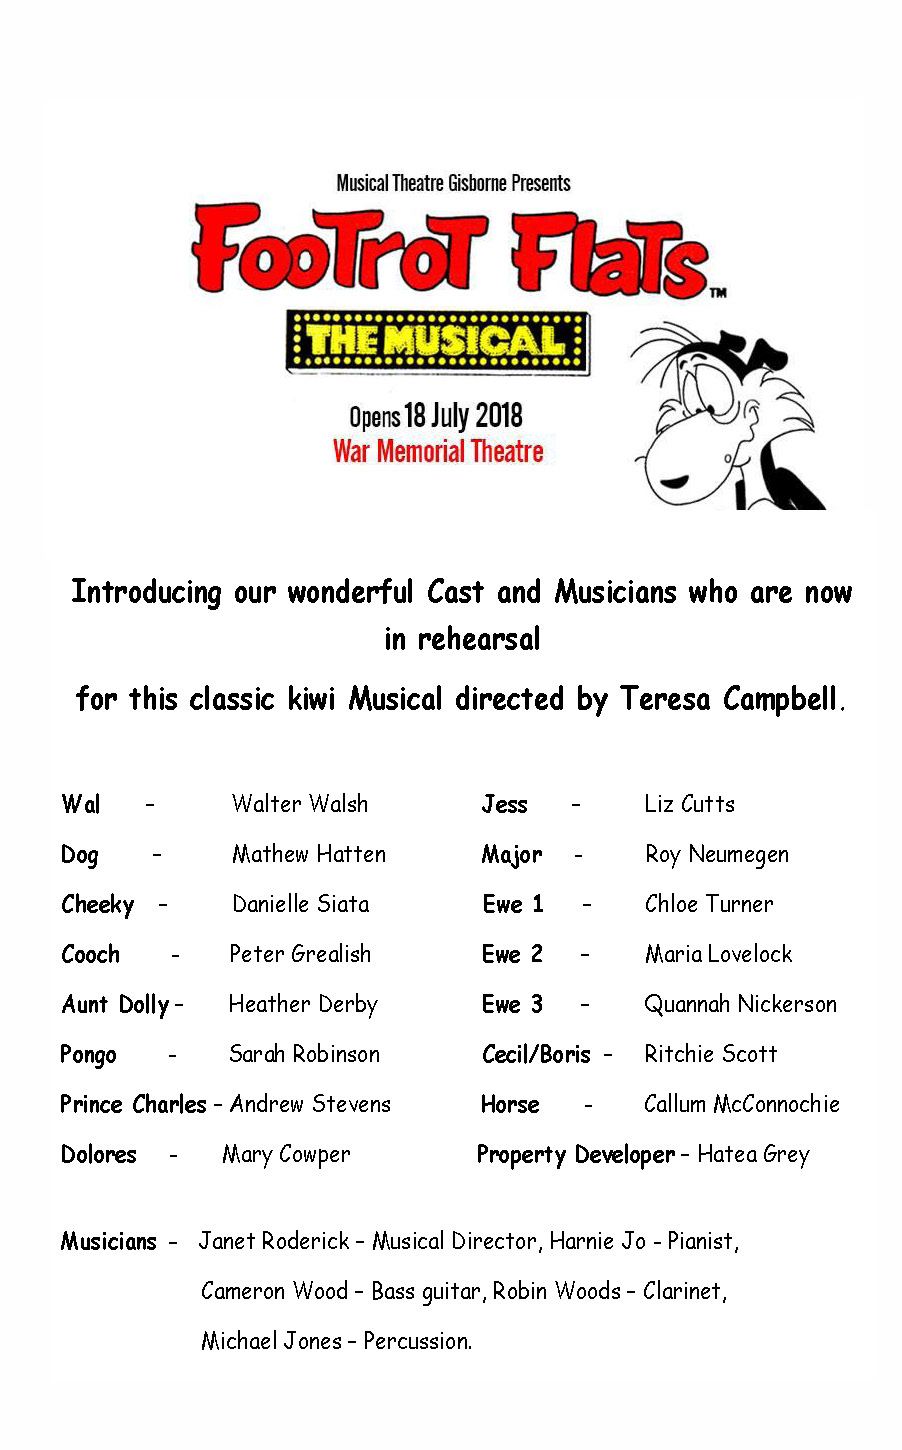 Footrot flats Cast and Musicians announcement